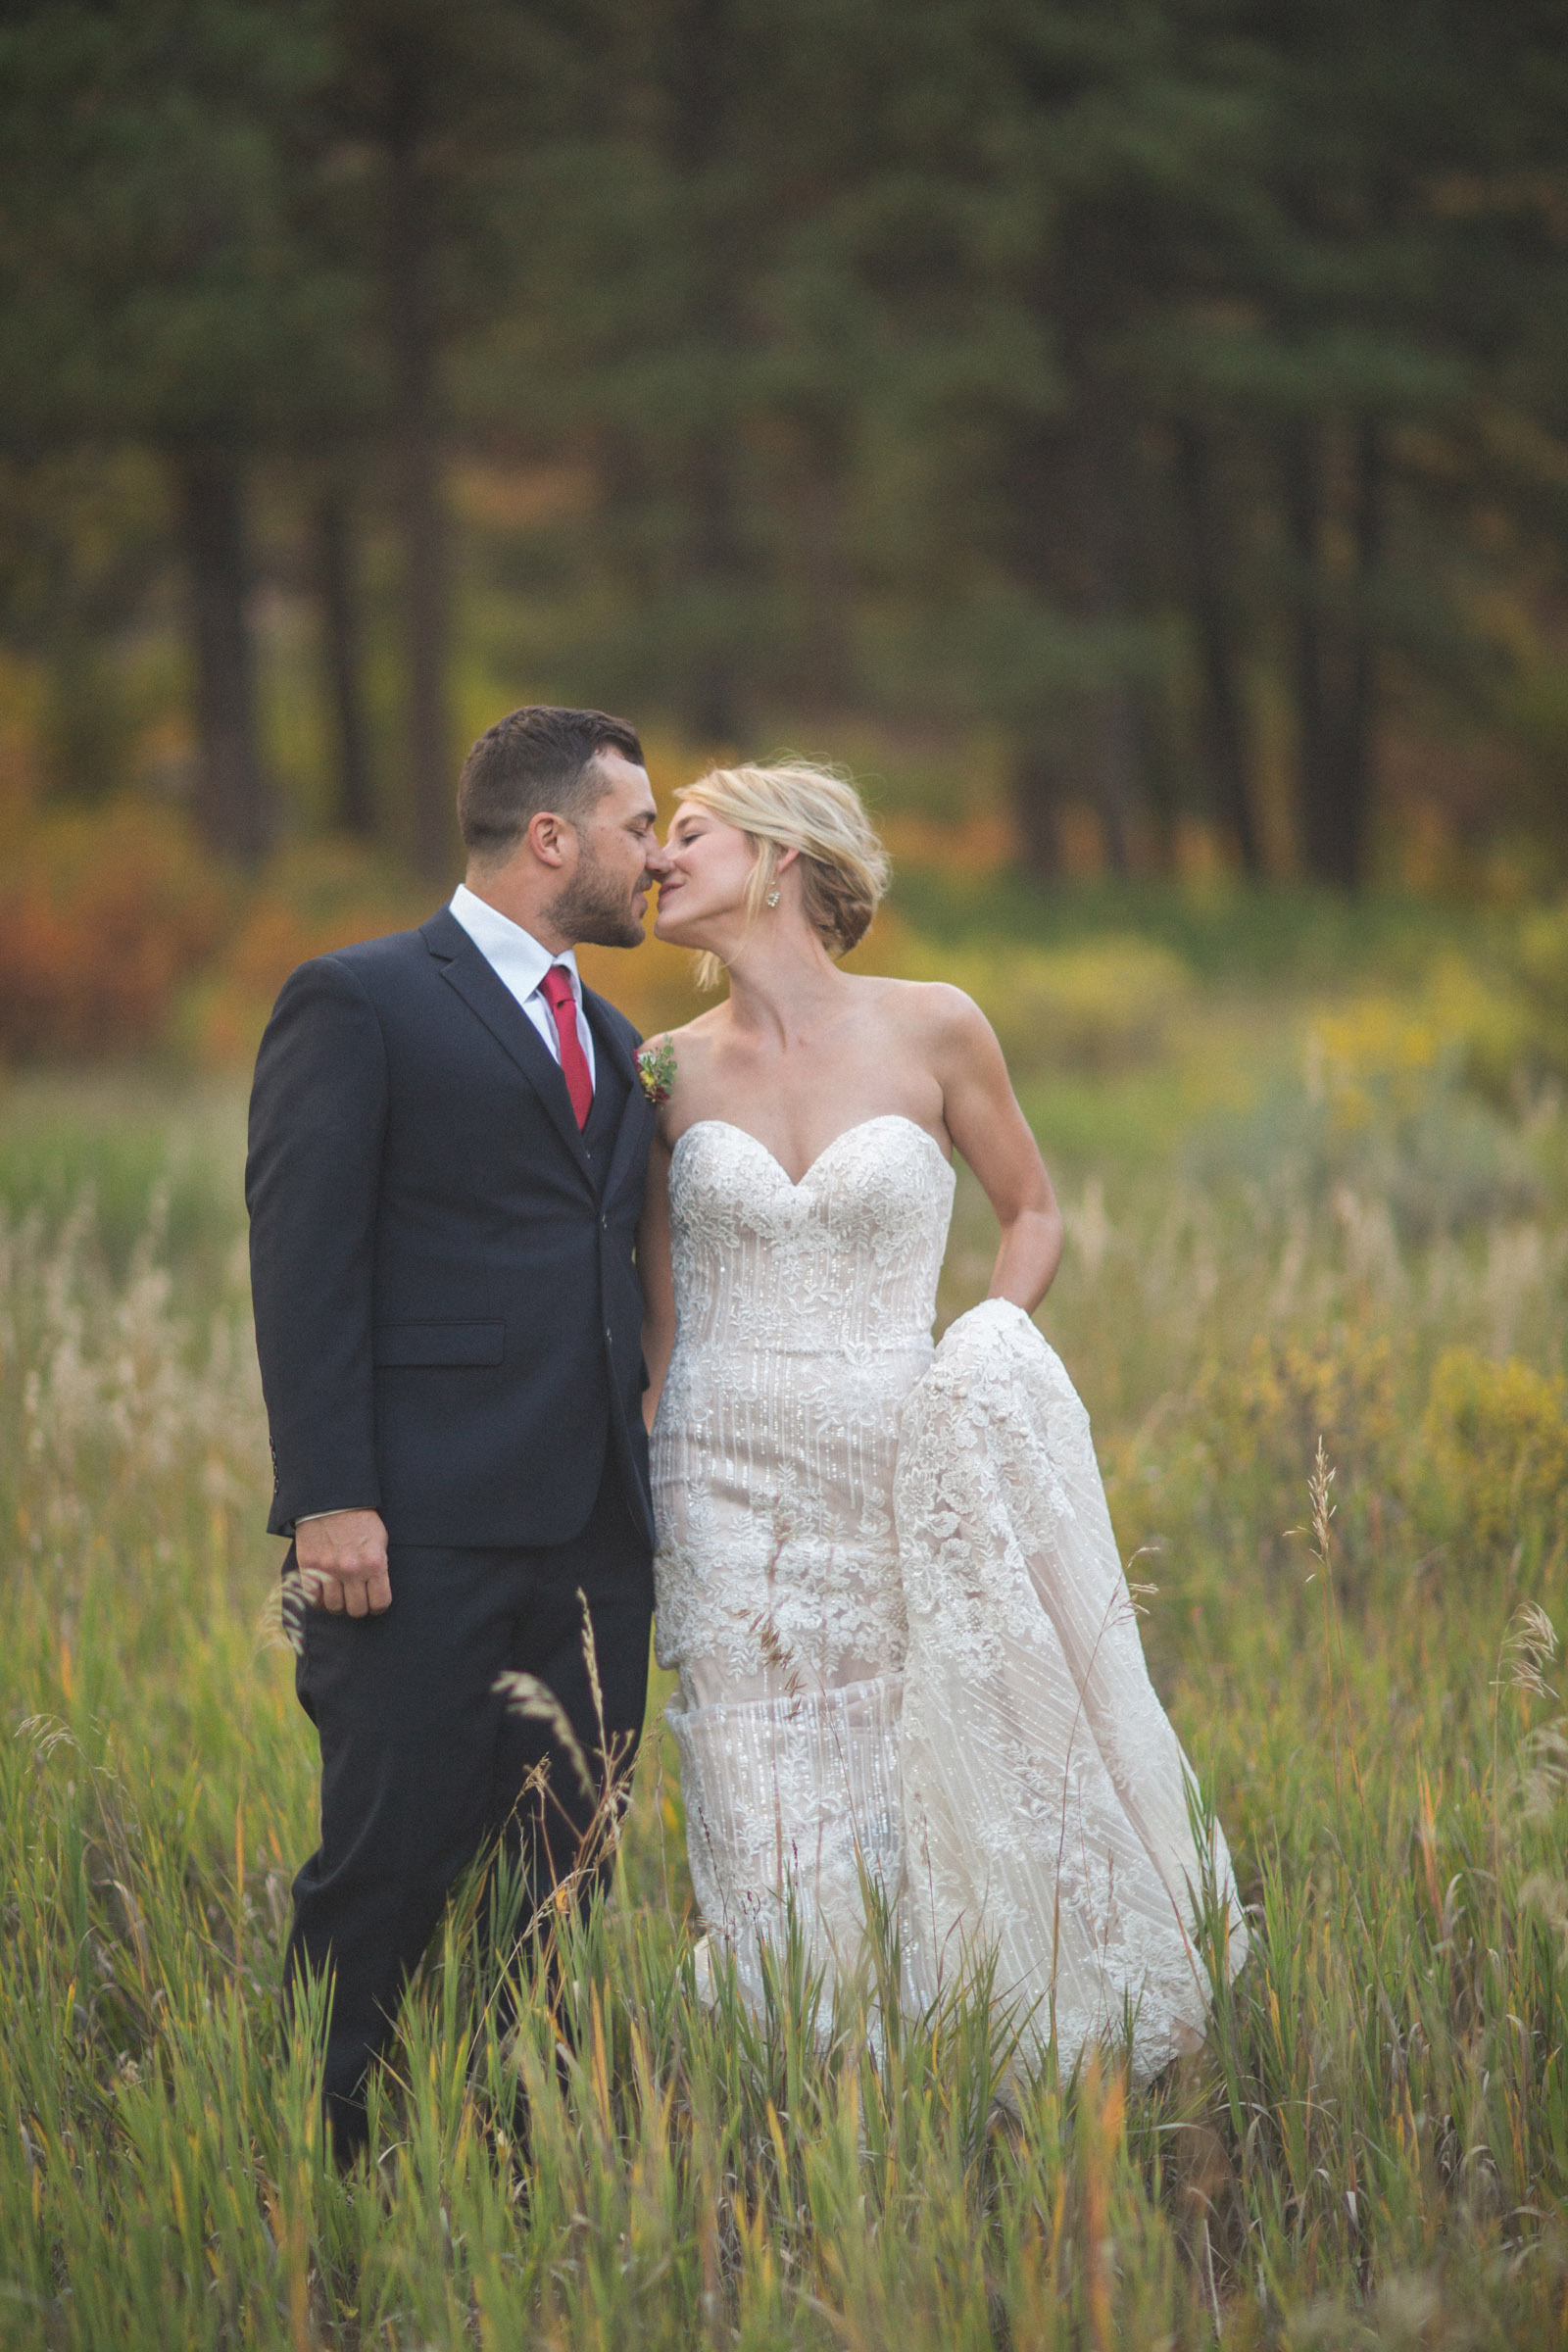 172-beautiful-bride-and-groom-photojournalist-portraits-at-elopement-wedding-in-durango-colorado-forest